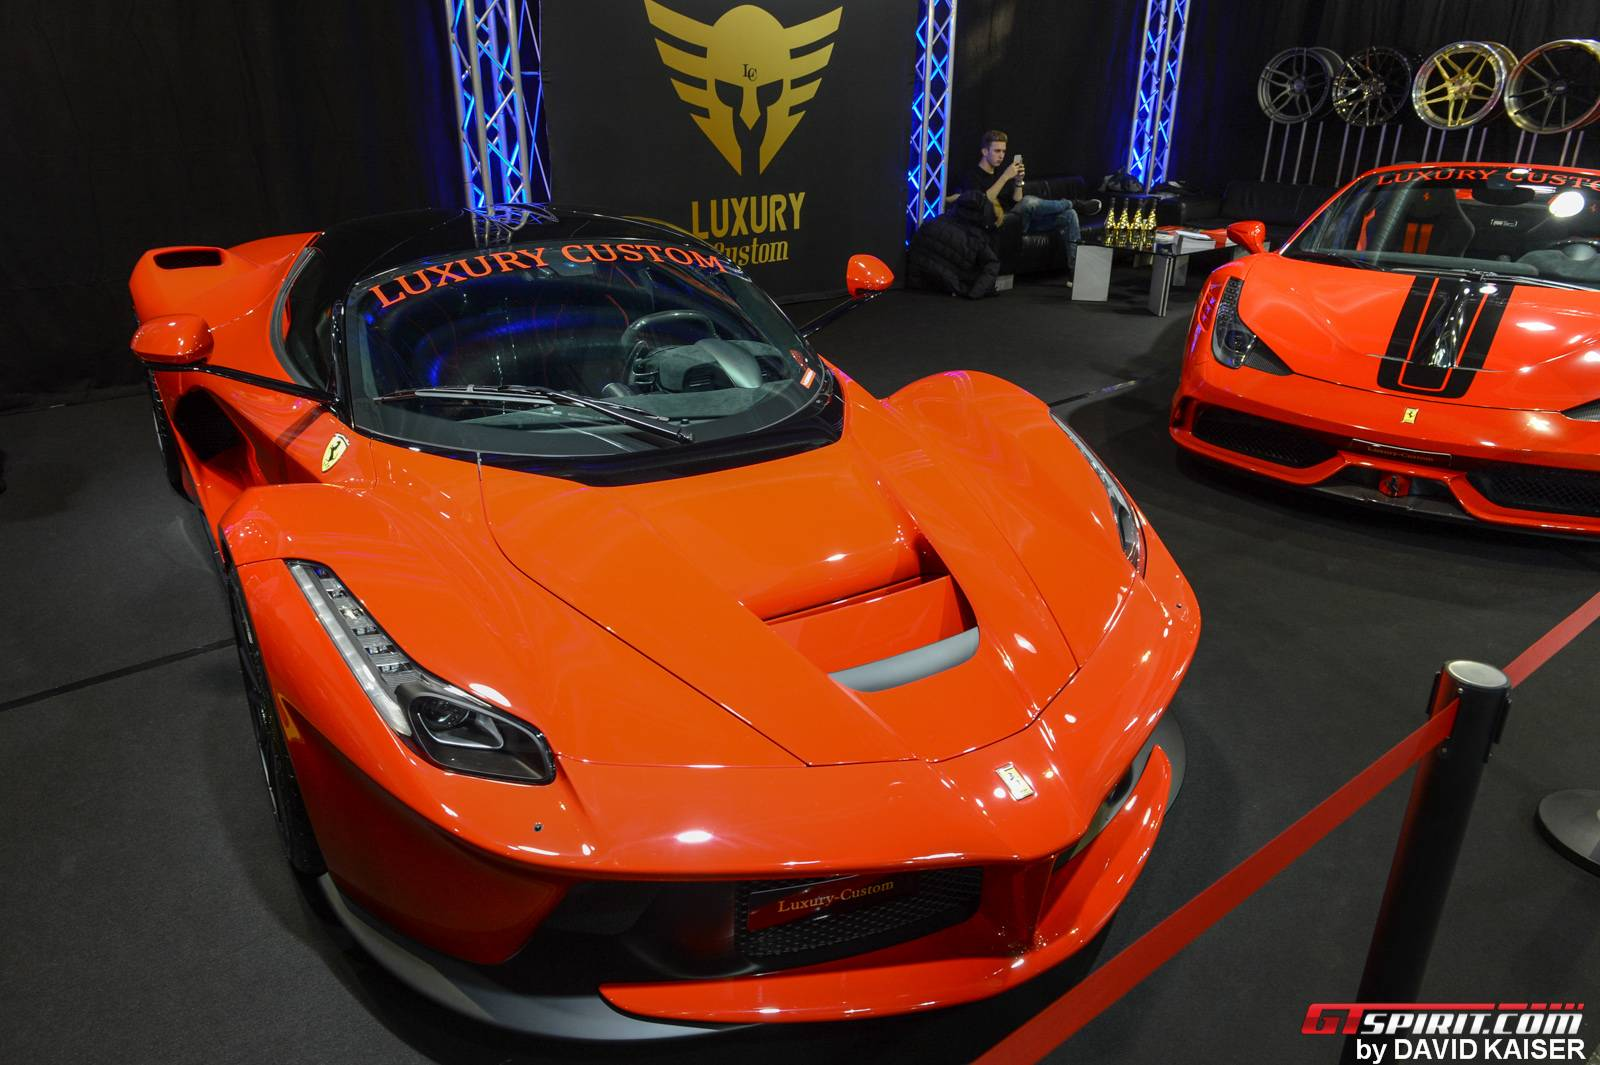 2015 Ferrari 458 Speciale >> Auto Zurich Car Show 2015 Highlights - GTspirit